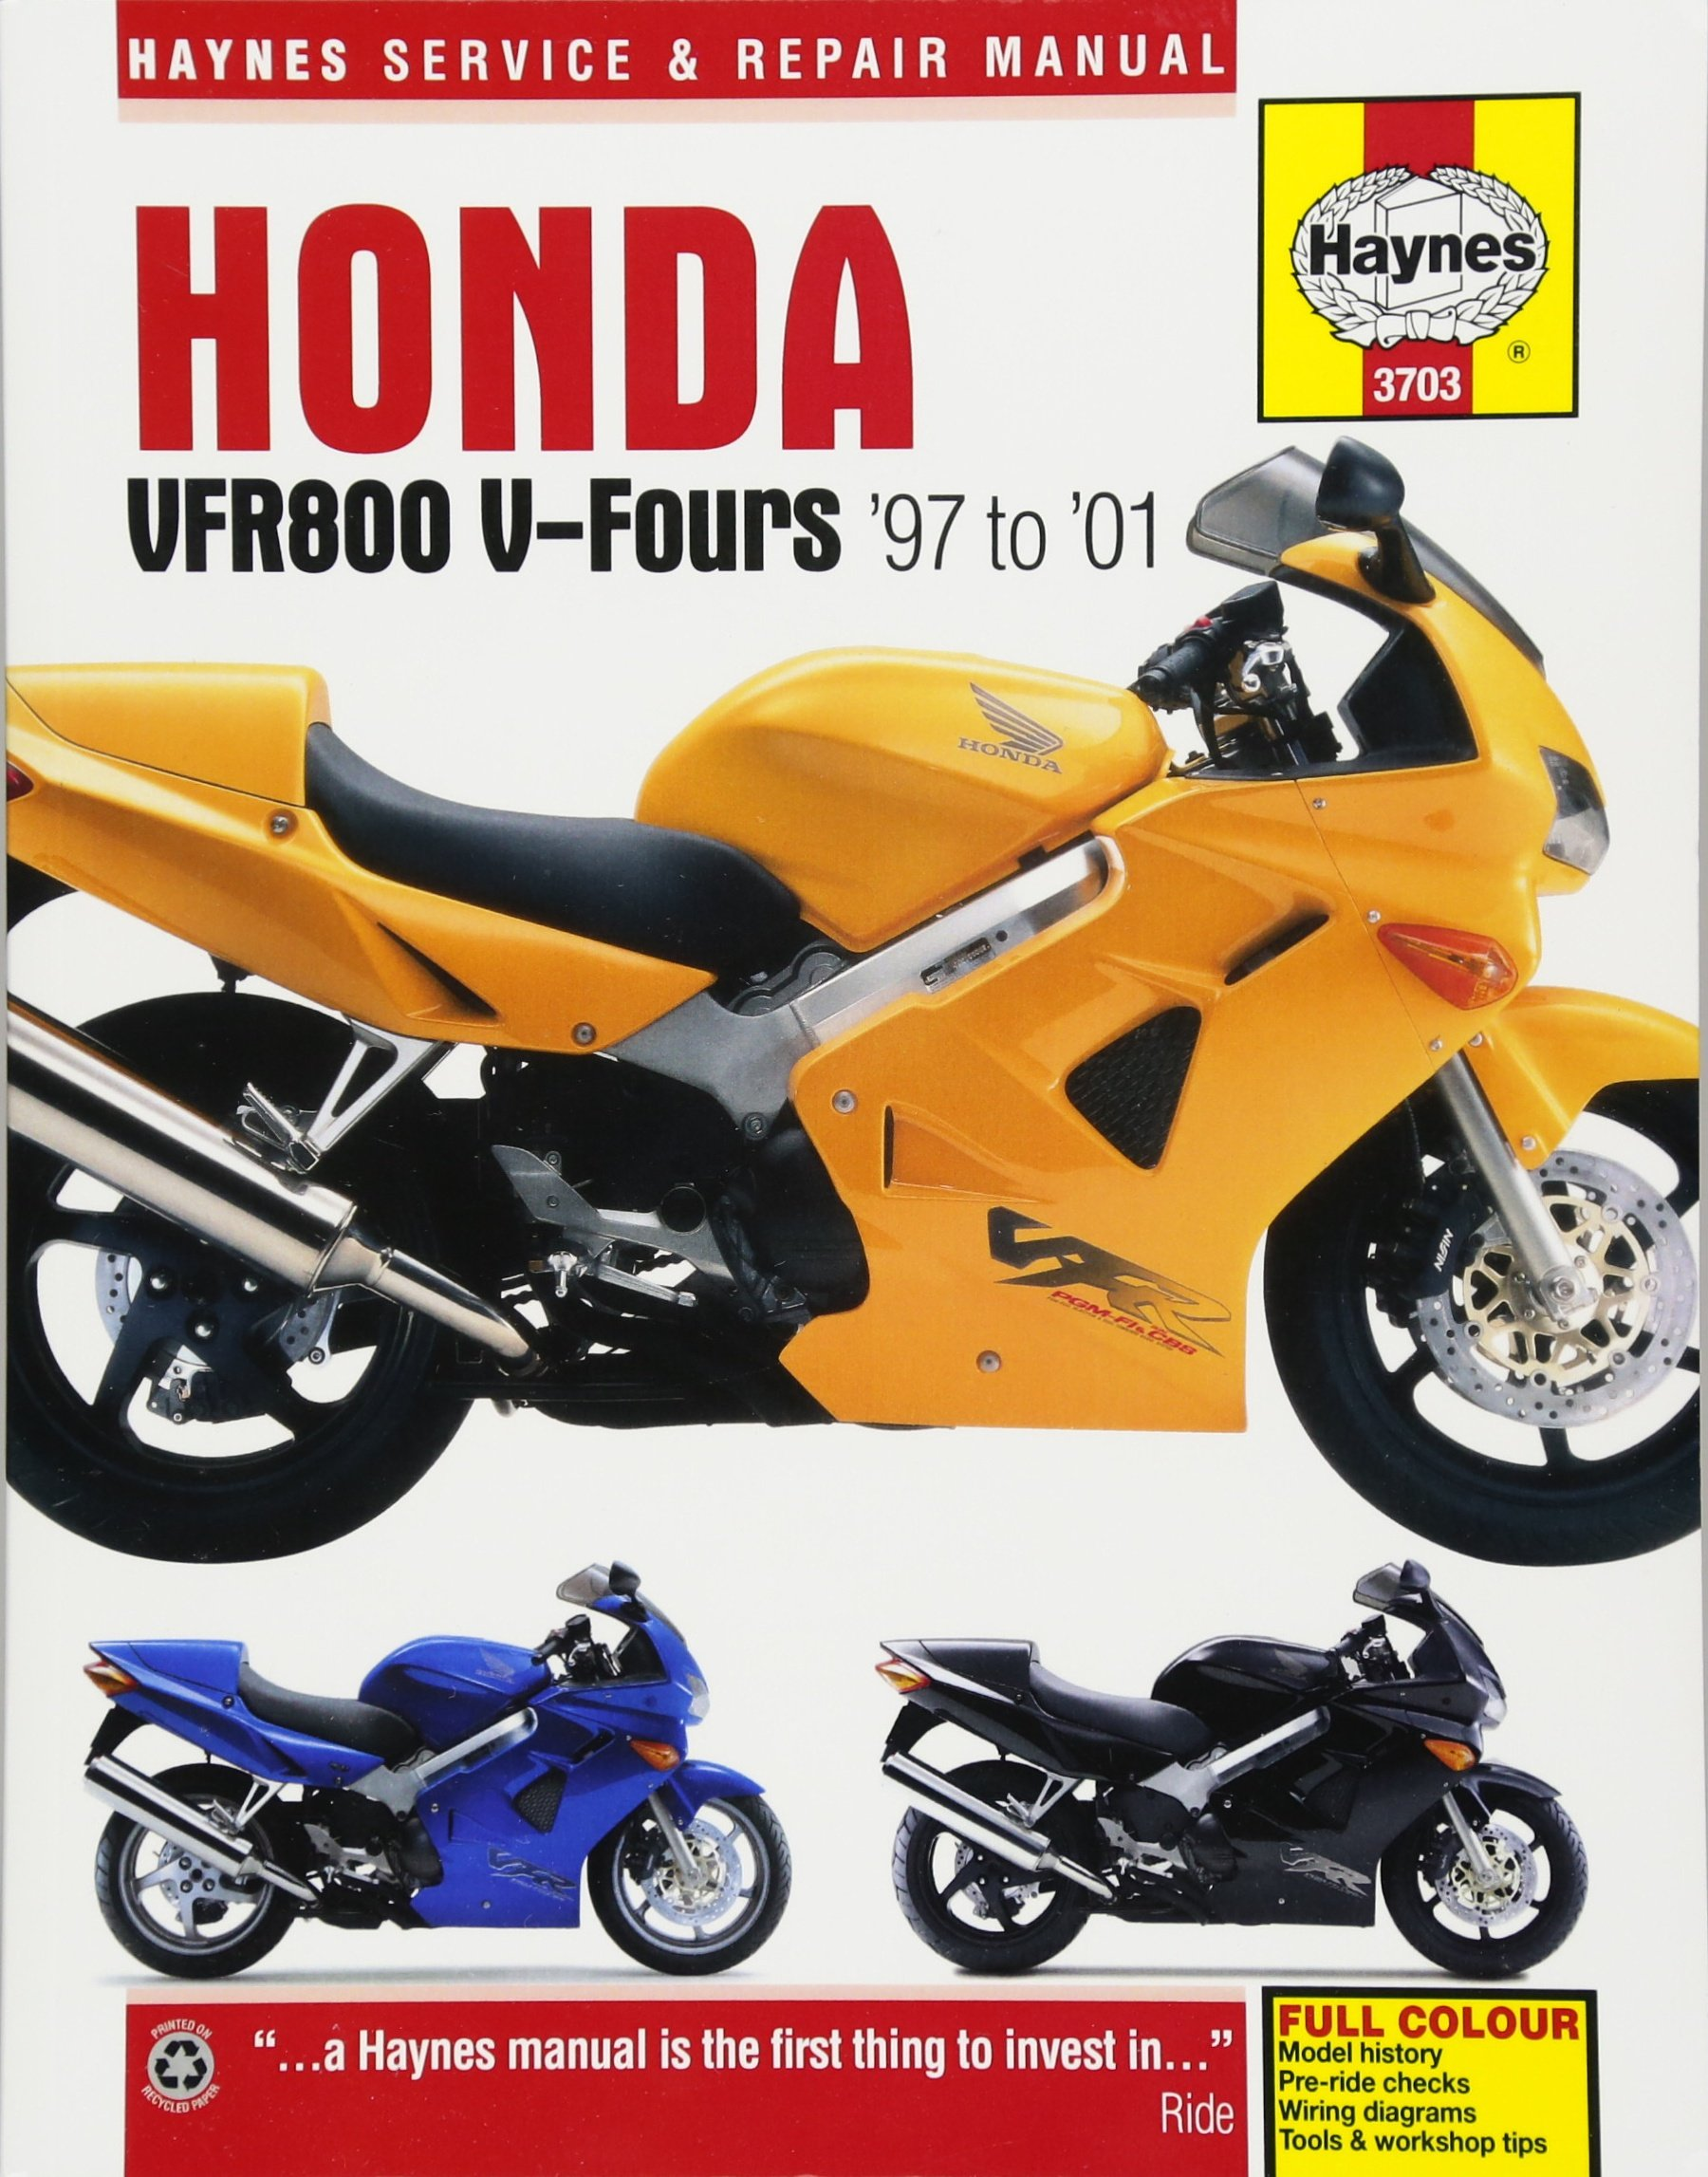 Honda VFR800 V-Fours '97-'01 (Haynes Service & Repair Manual): Editors of  Haynes Manuals: 9781785213083: Amazon.com: Books